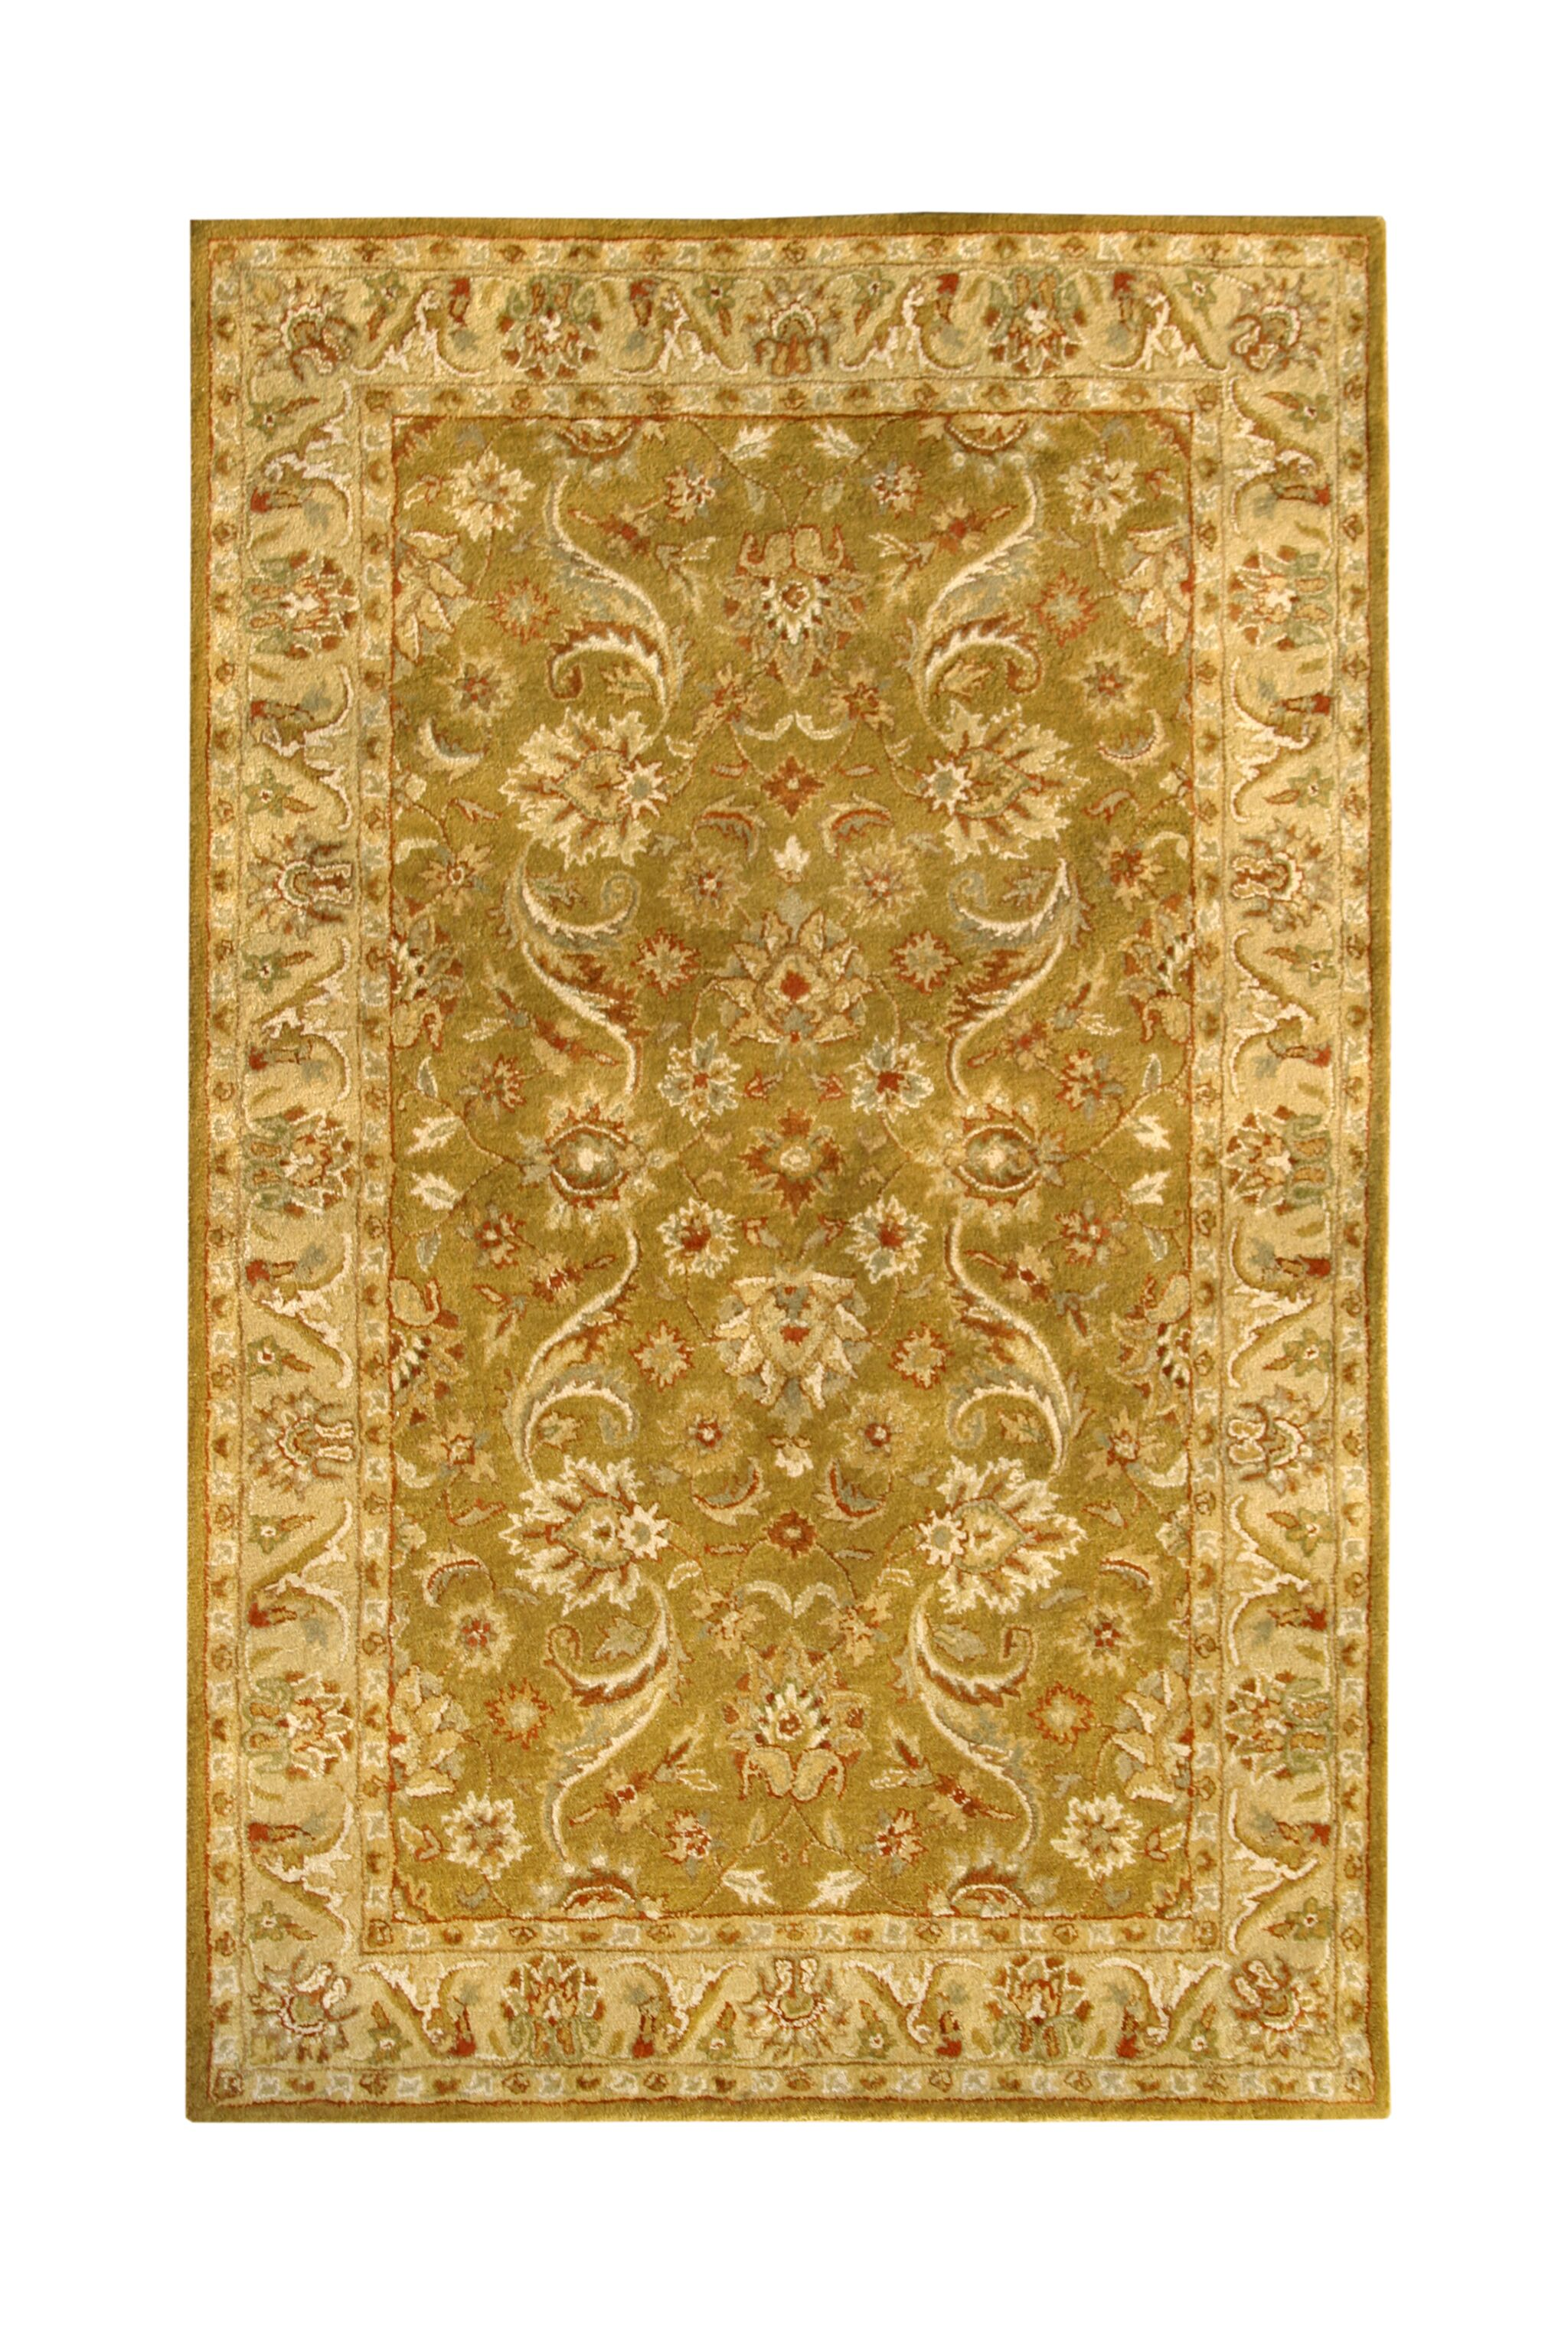 Harmony Gold Floral Area Rug Rug Size: 5' x 8'